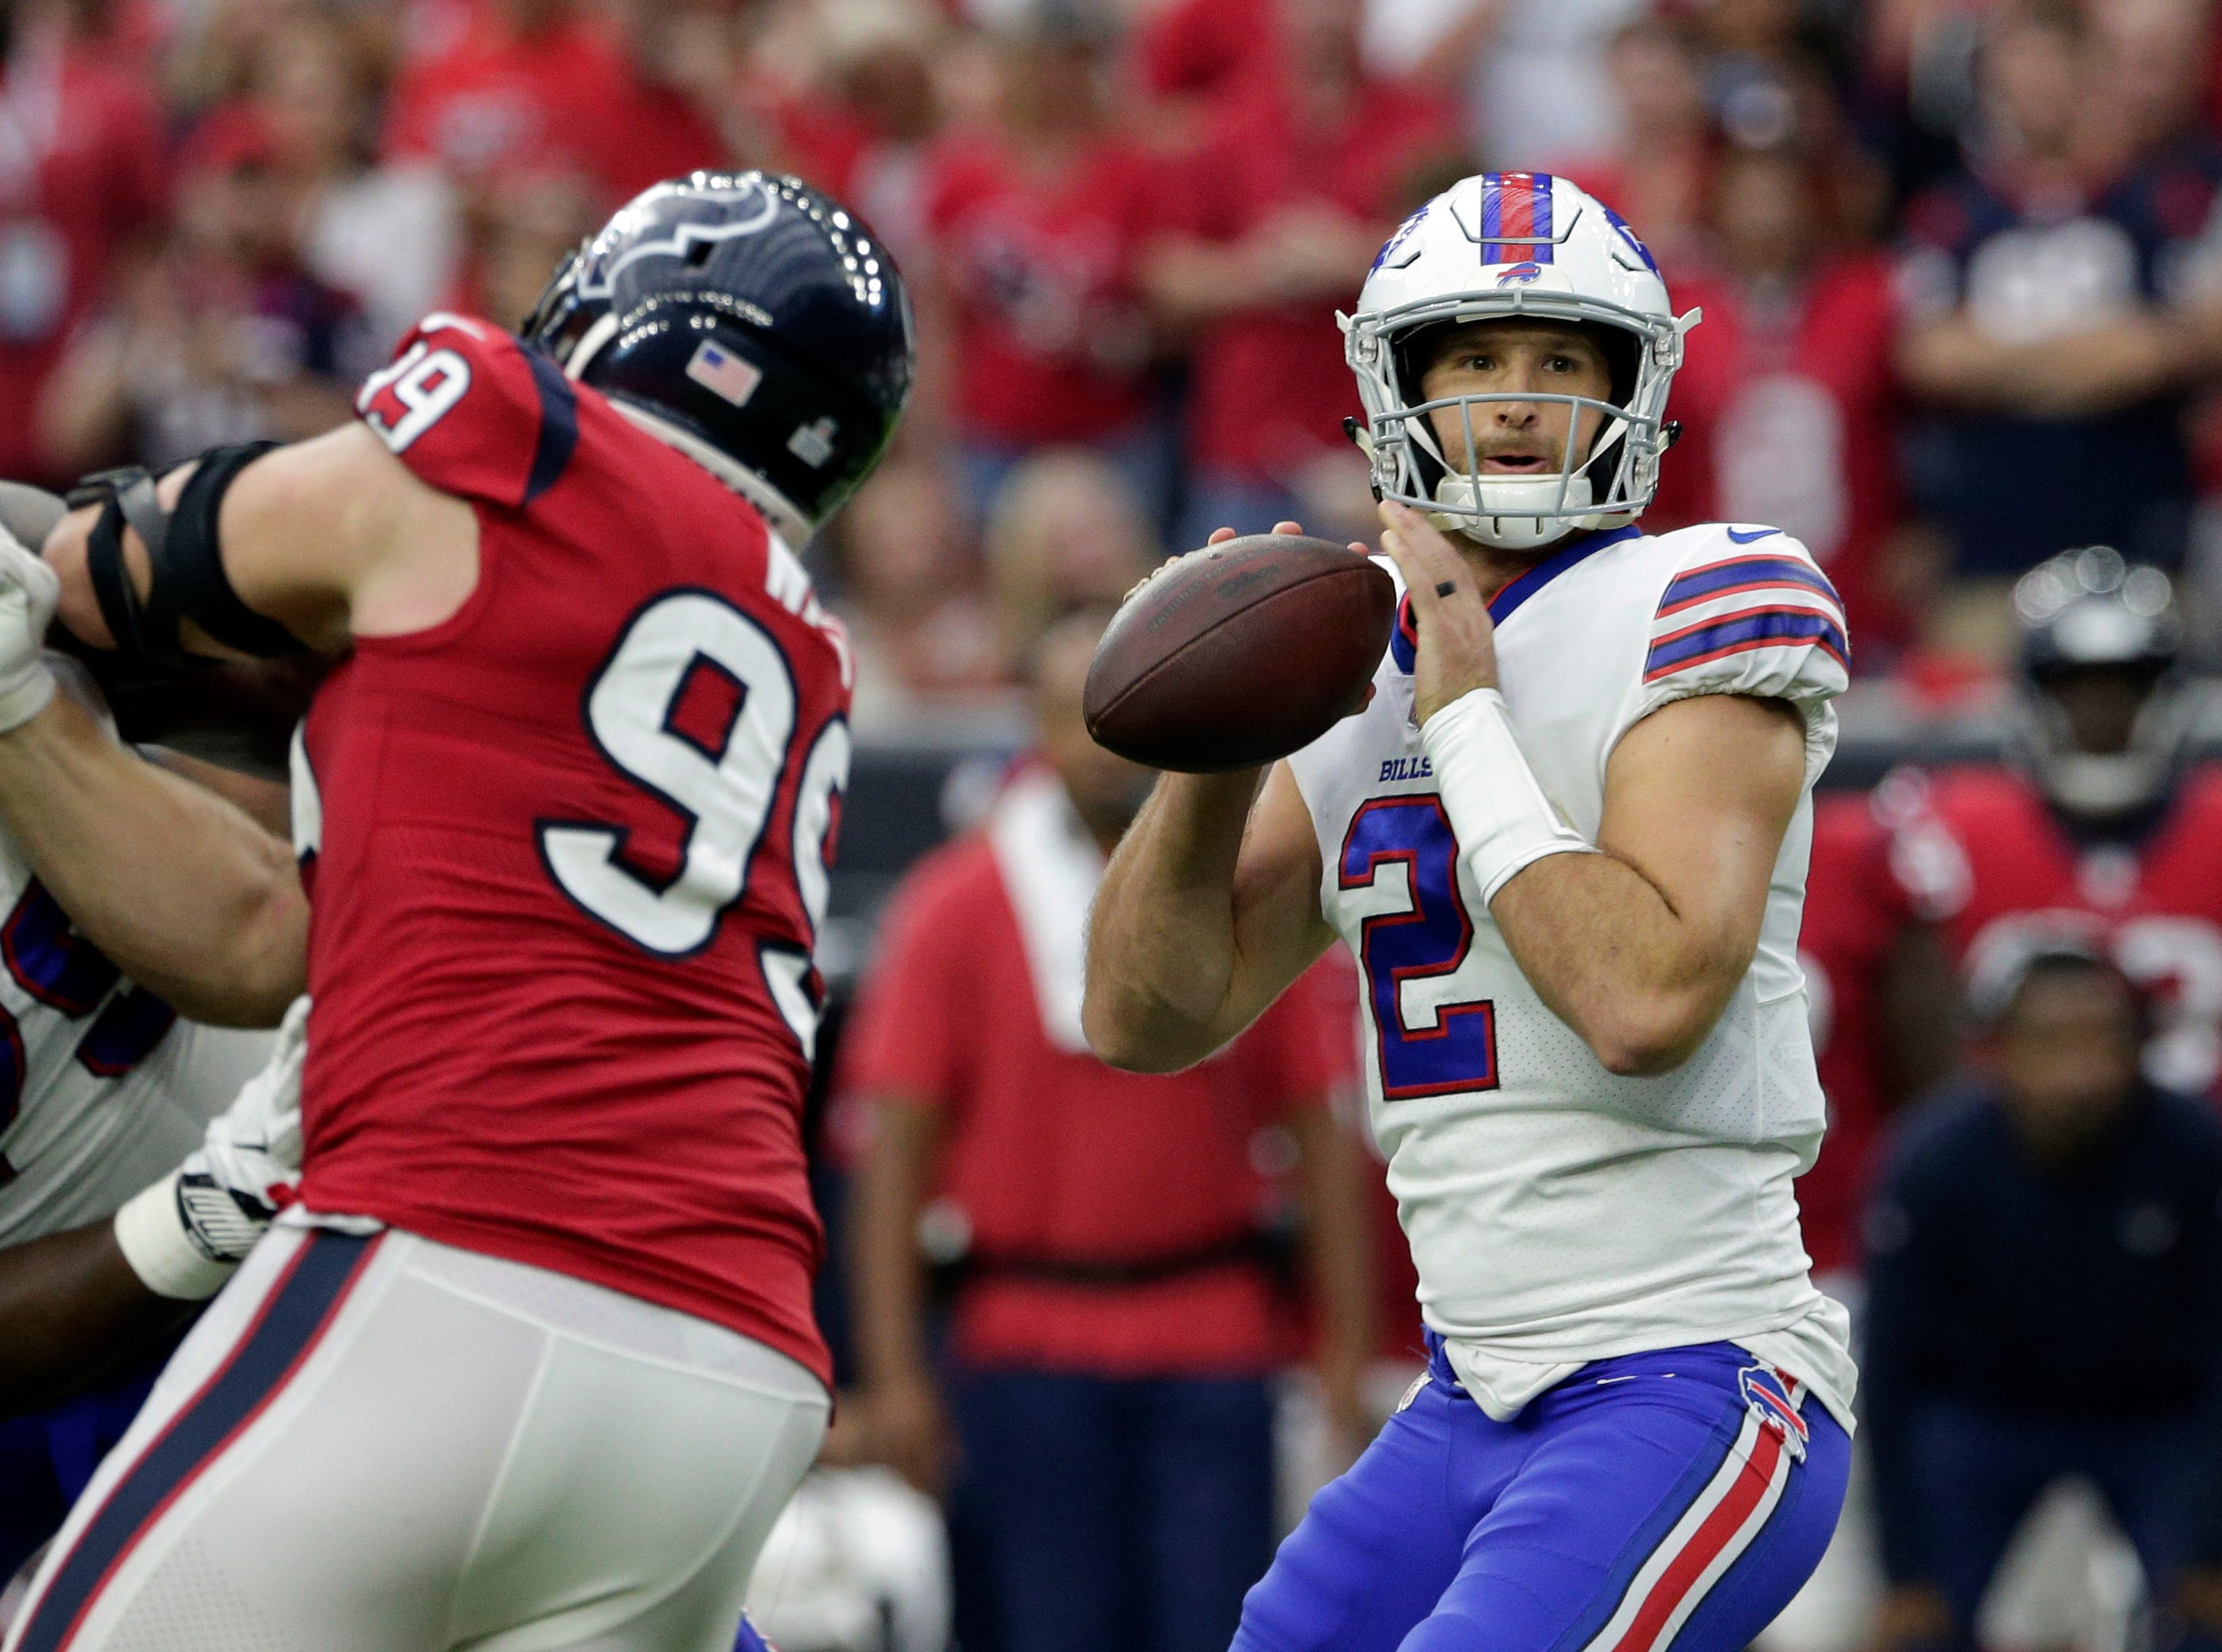 Buffalo Bills quarterback Nathan Peterman (2) looks to throw against the Houston Texans during the second half of an NFL football game, Sunday, Oct. 14, 2018, in Houston. (AP Photo/Michael Wyke)